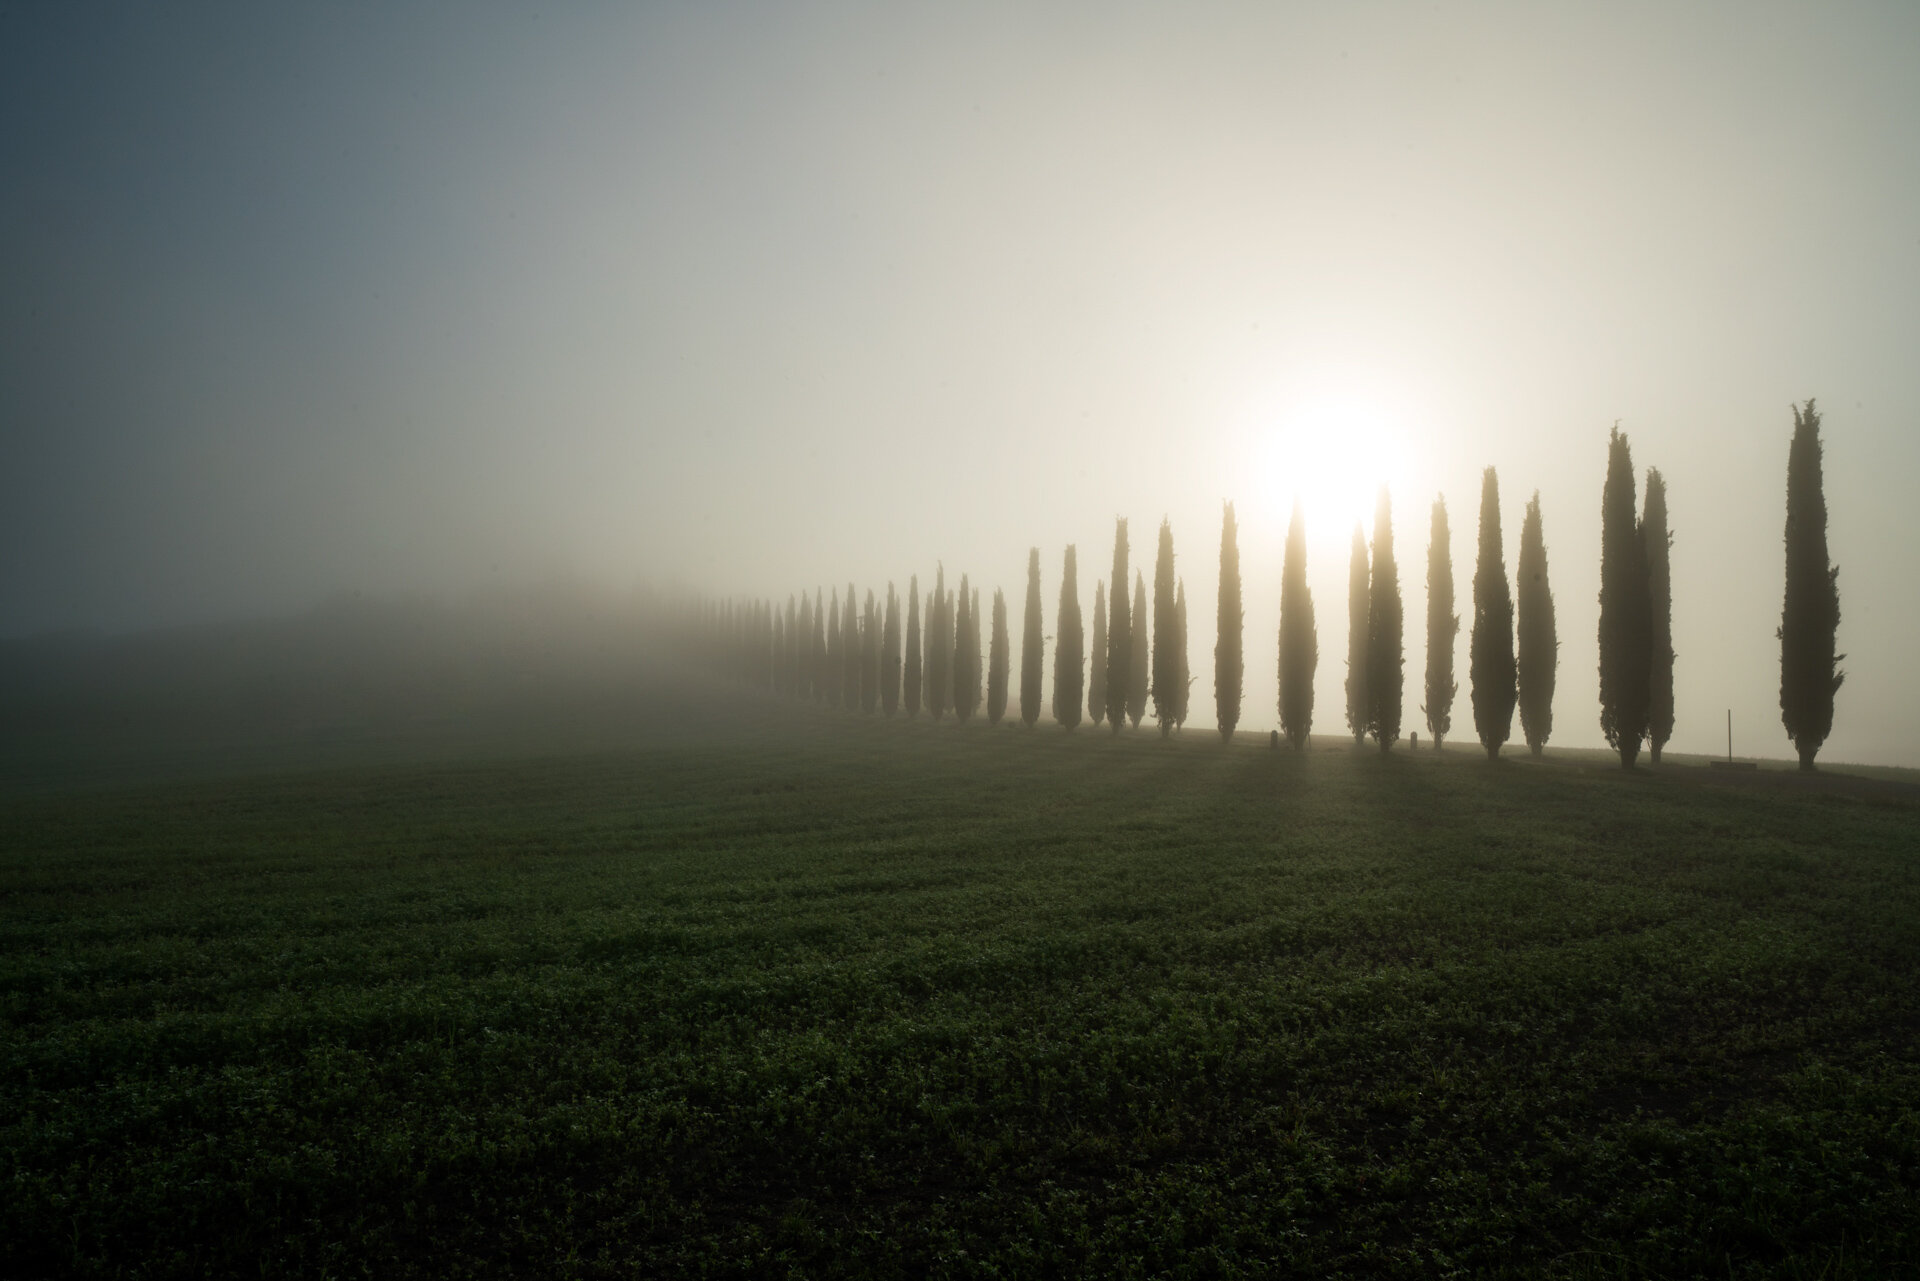 Cypress trees in a foggy morning in val d'Orcia  PHOTOGRAPHY: MIRKO FIN • Sony Alpha 7R MkIII • SONY FE 12-24MM Ƒ/4 G @ 24MM • Ƒ/20 • 1/80 sec • ISO 100